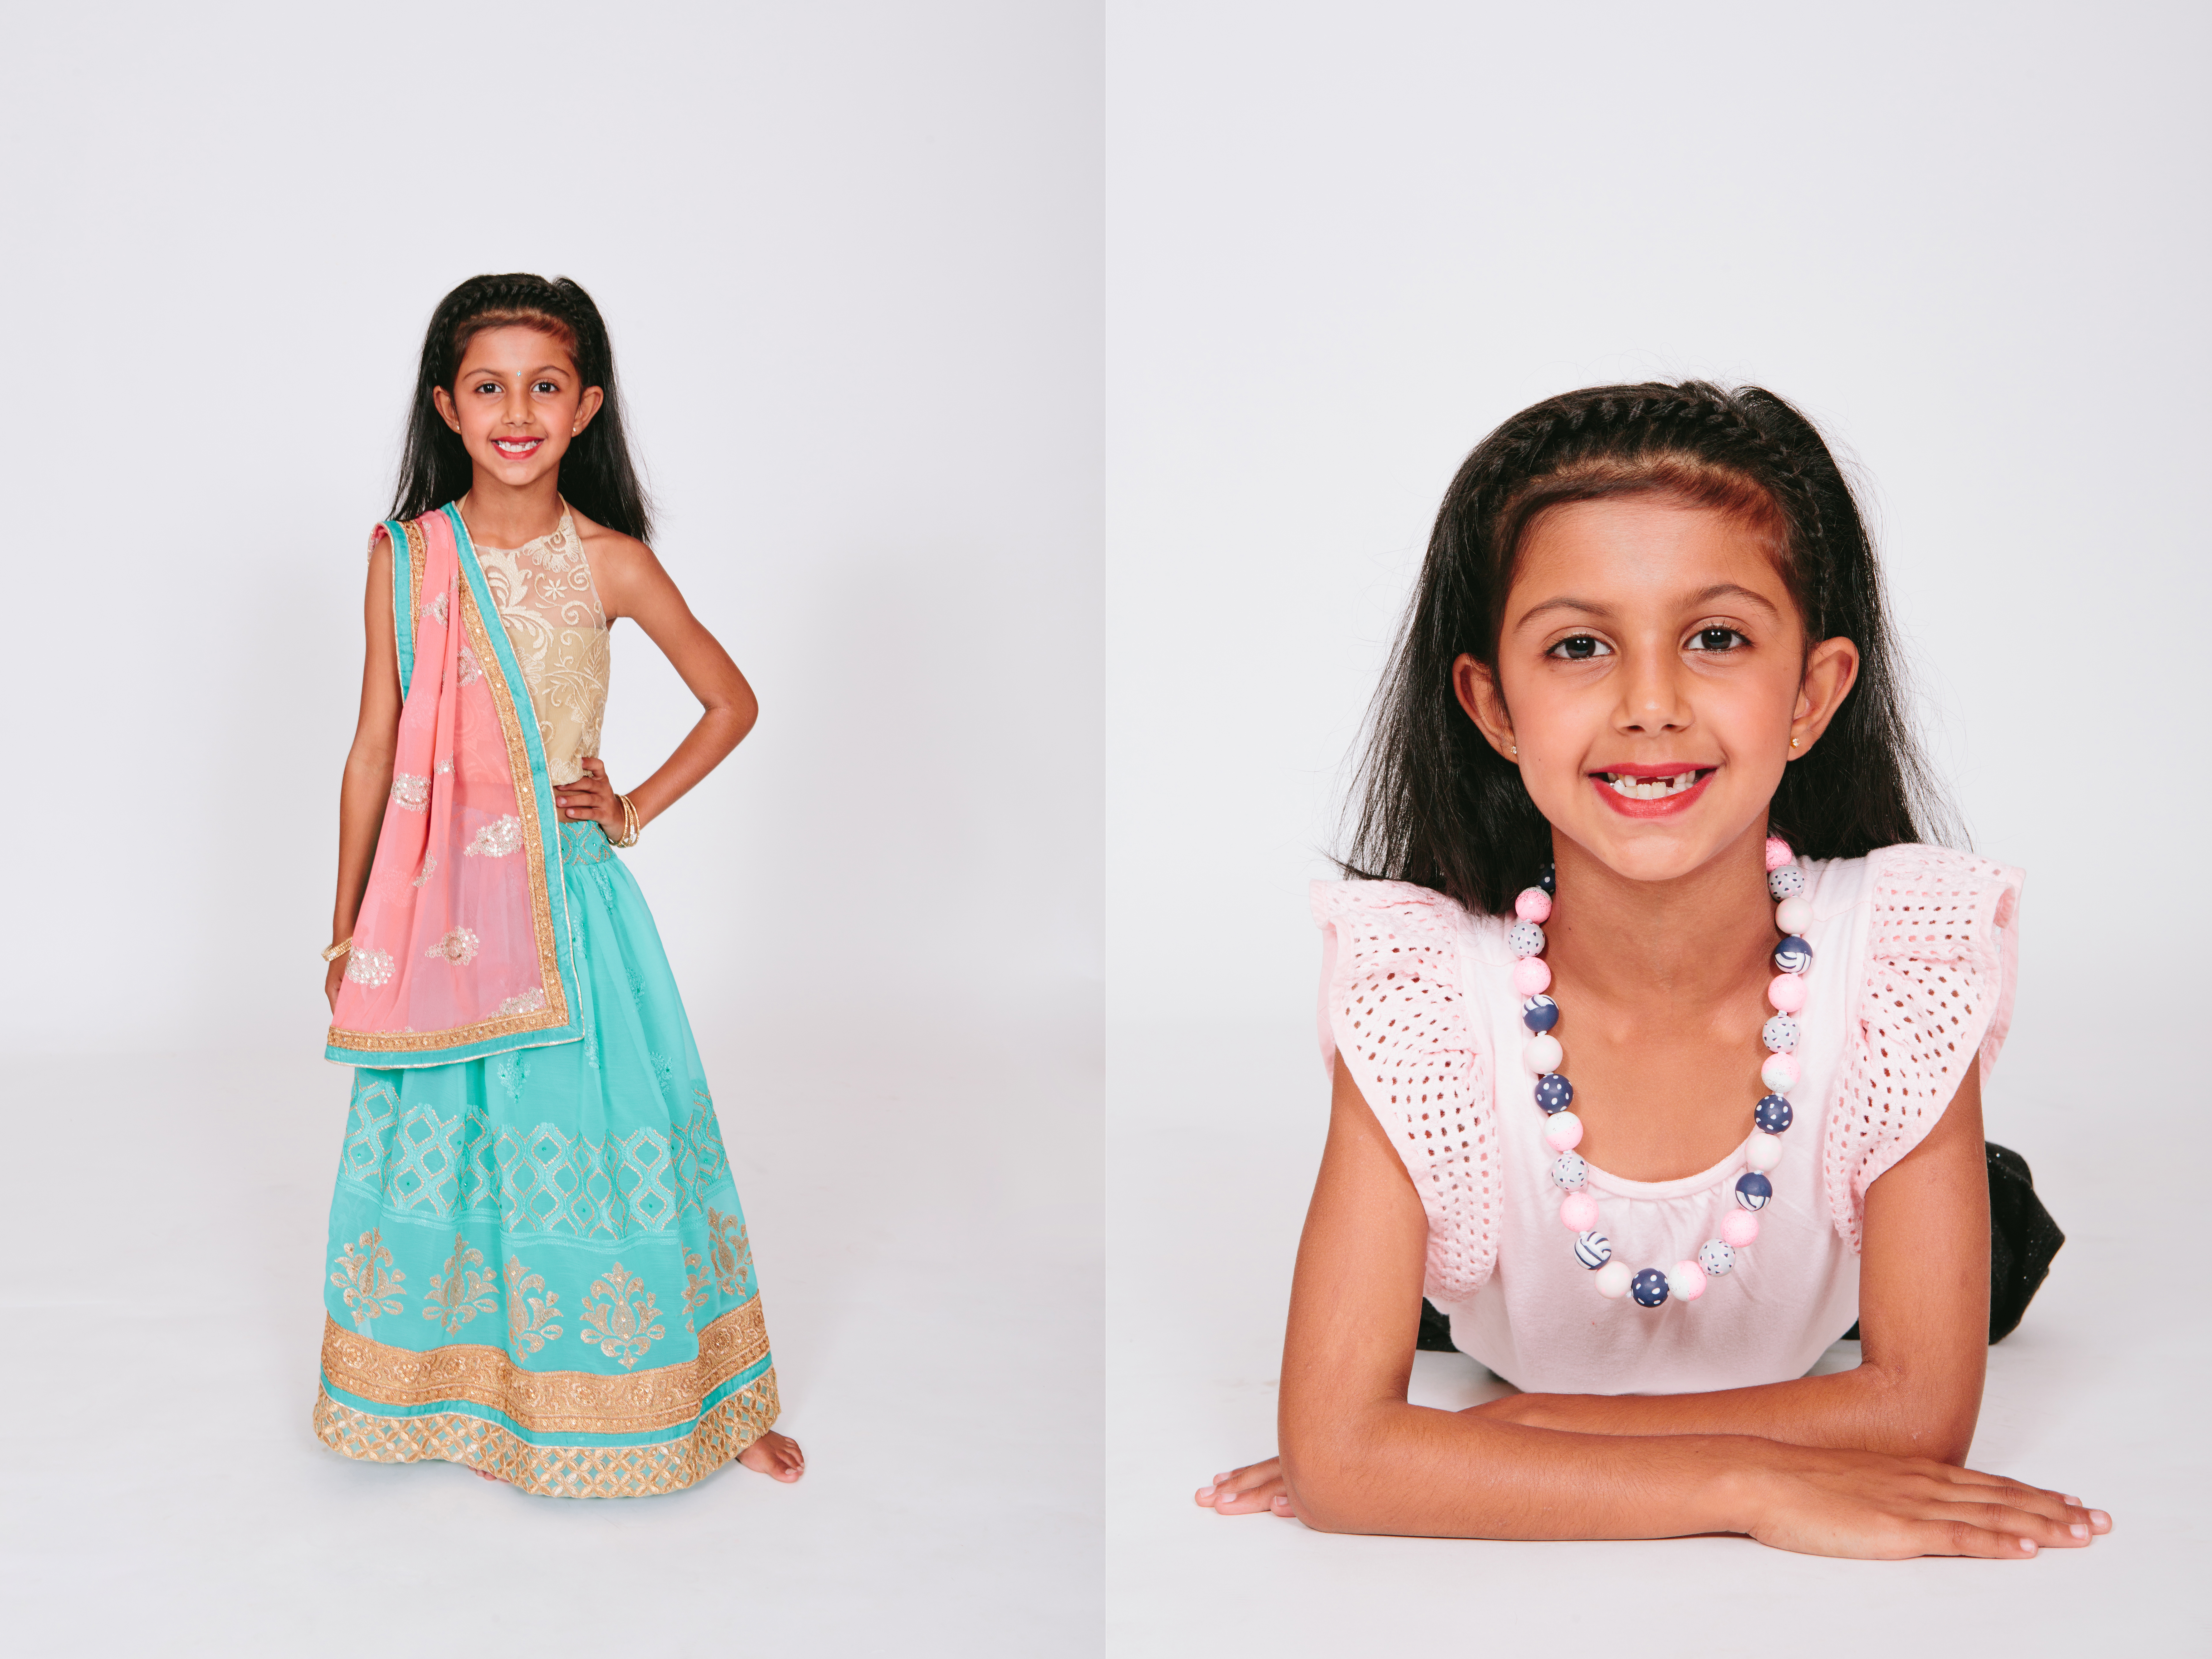 studio photography of individual indian children portrait during family photoshoot in west harbour auckland by sarah weber photography